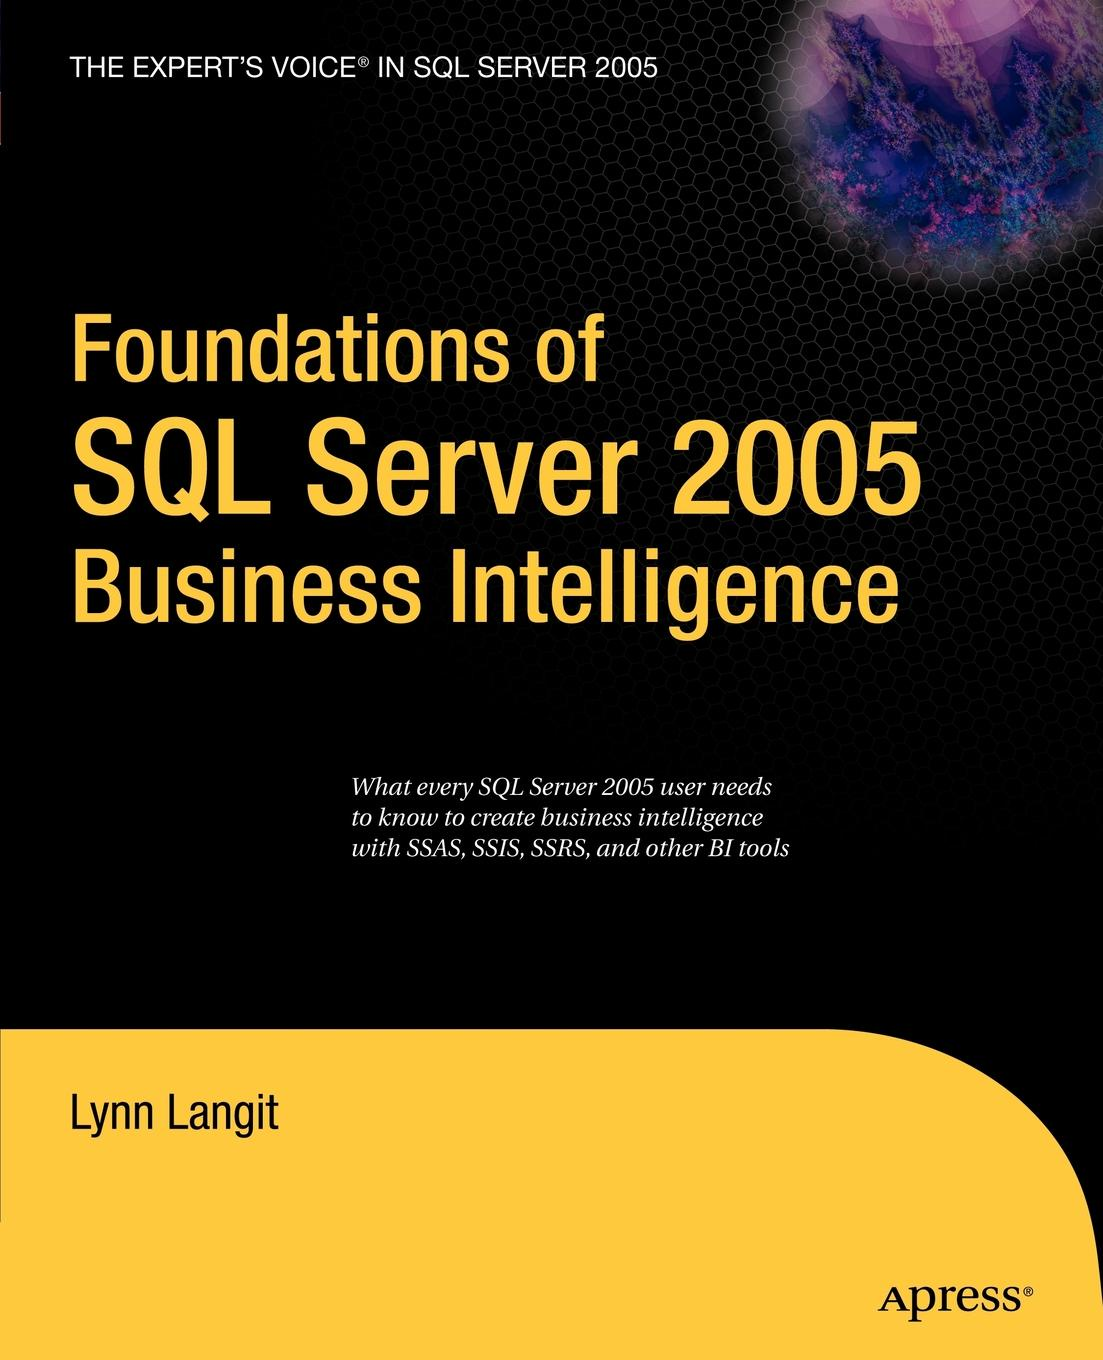 Lynn Langit Foundations of SQL Server 2005 Business Intelligence rigoberto garcia foundations book ii understanding sql server 2005 supporting technology xml xslt xquery xpath ms schemas dtd s namespaces